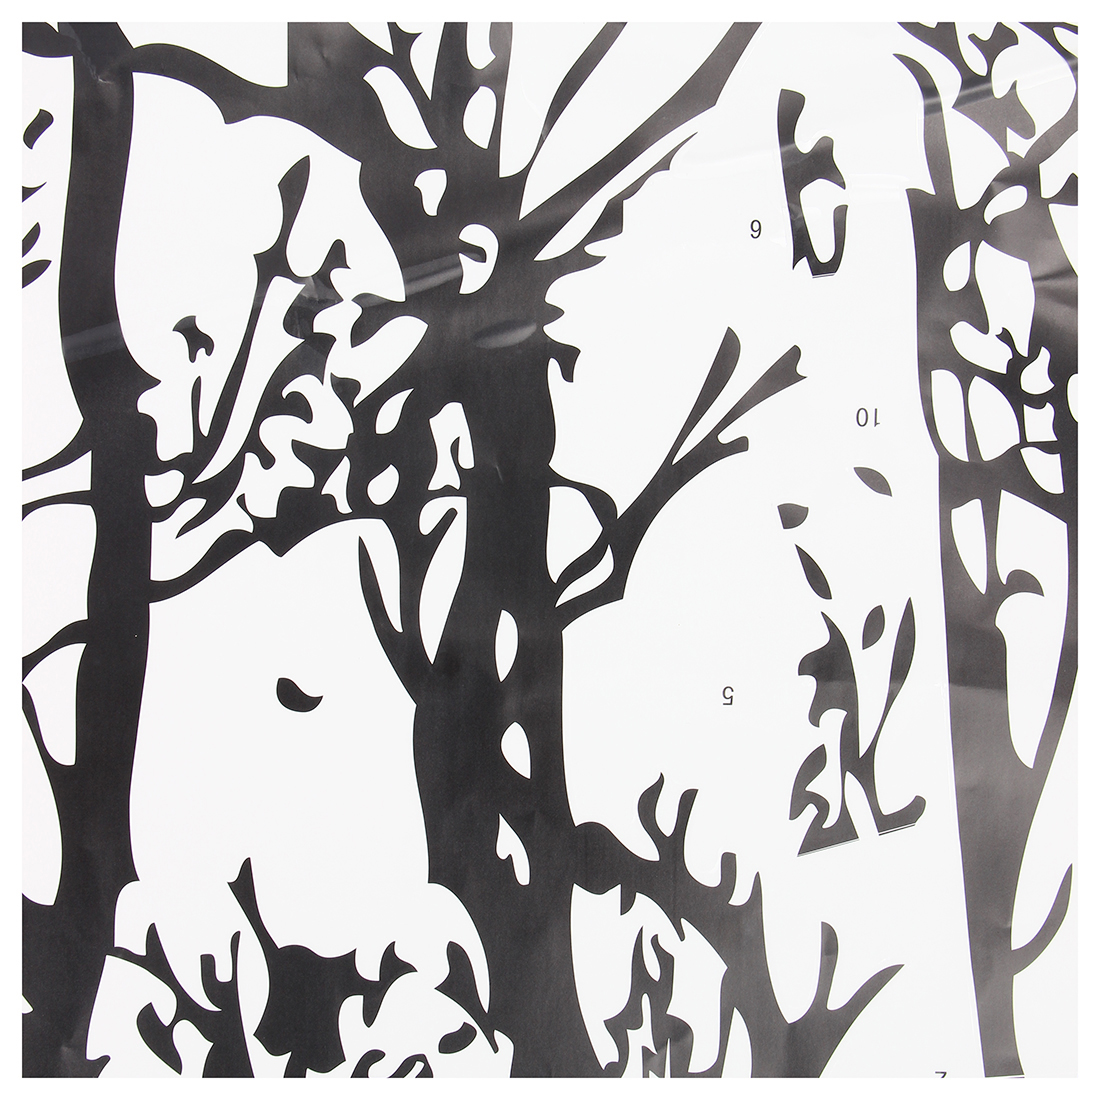 z2g3 10x black tree branch pvc removable room art mural